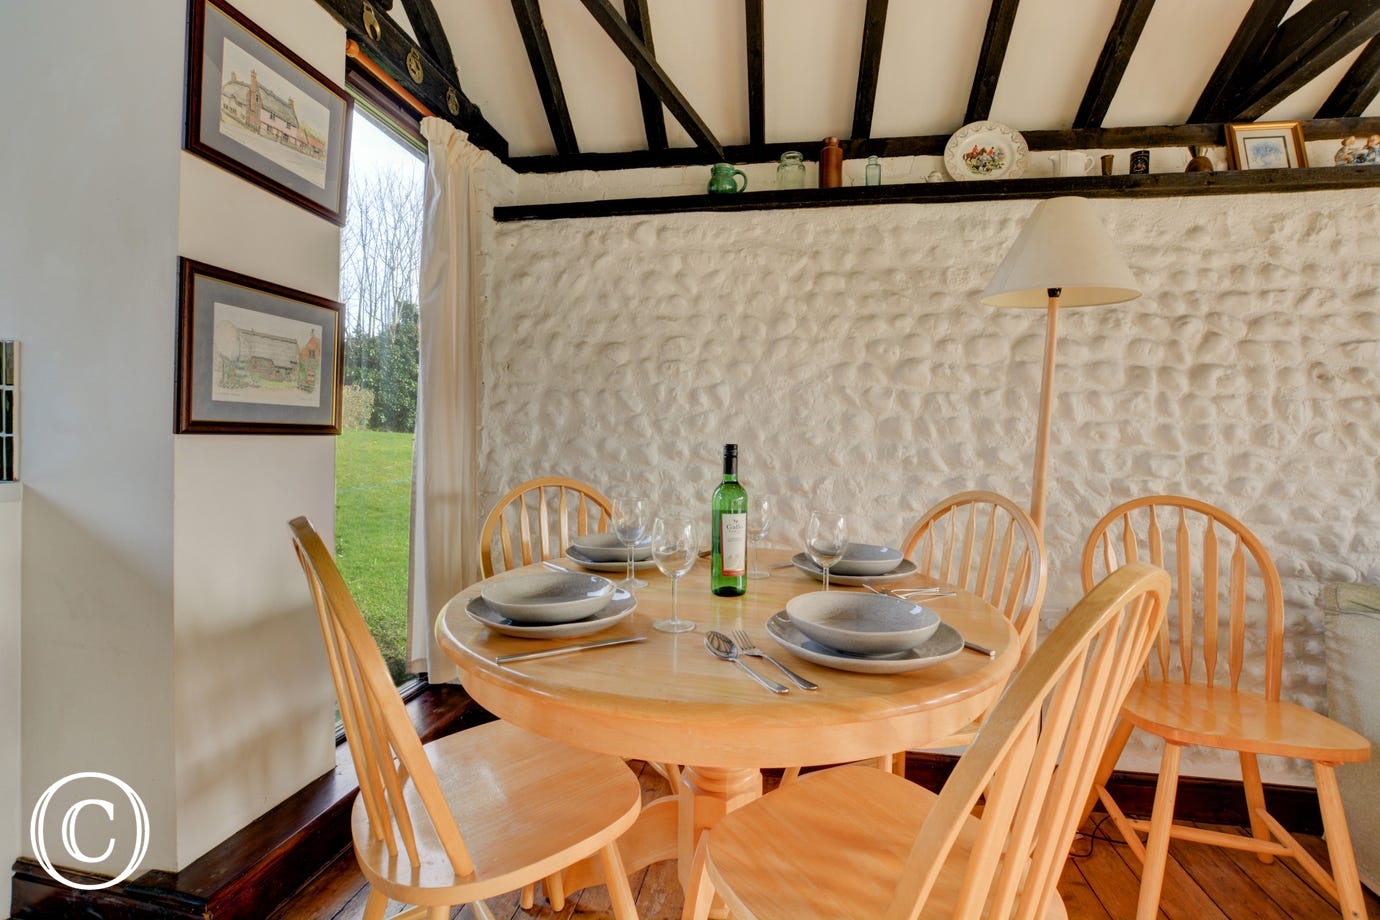 A dining area provides a table and chairs, perfect for family meals